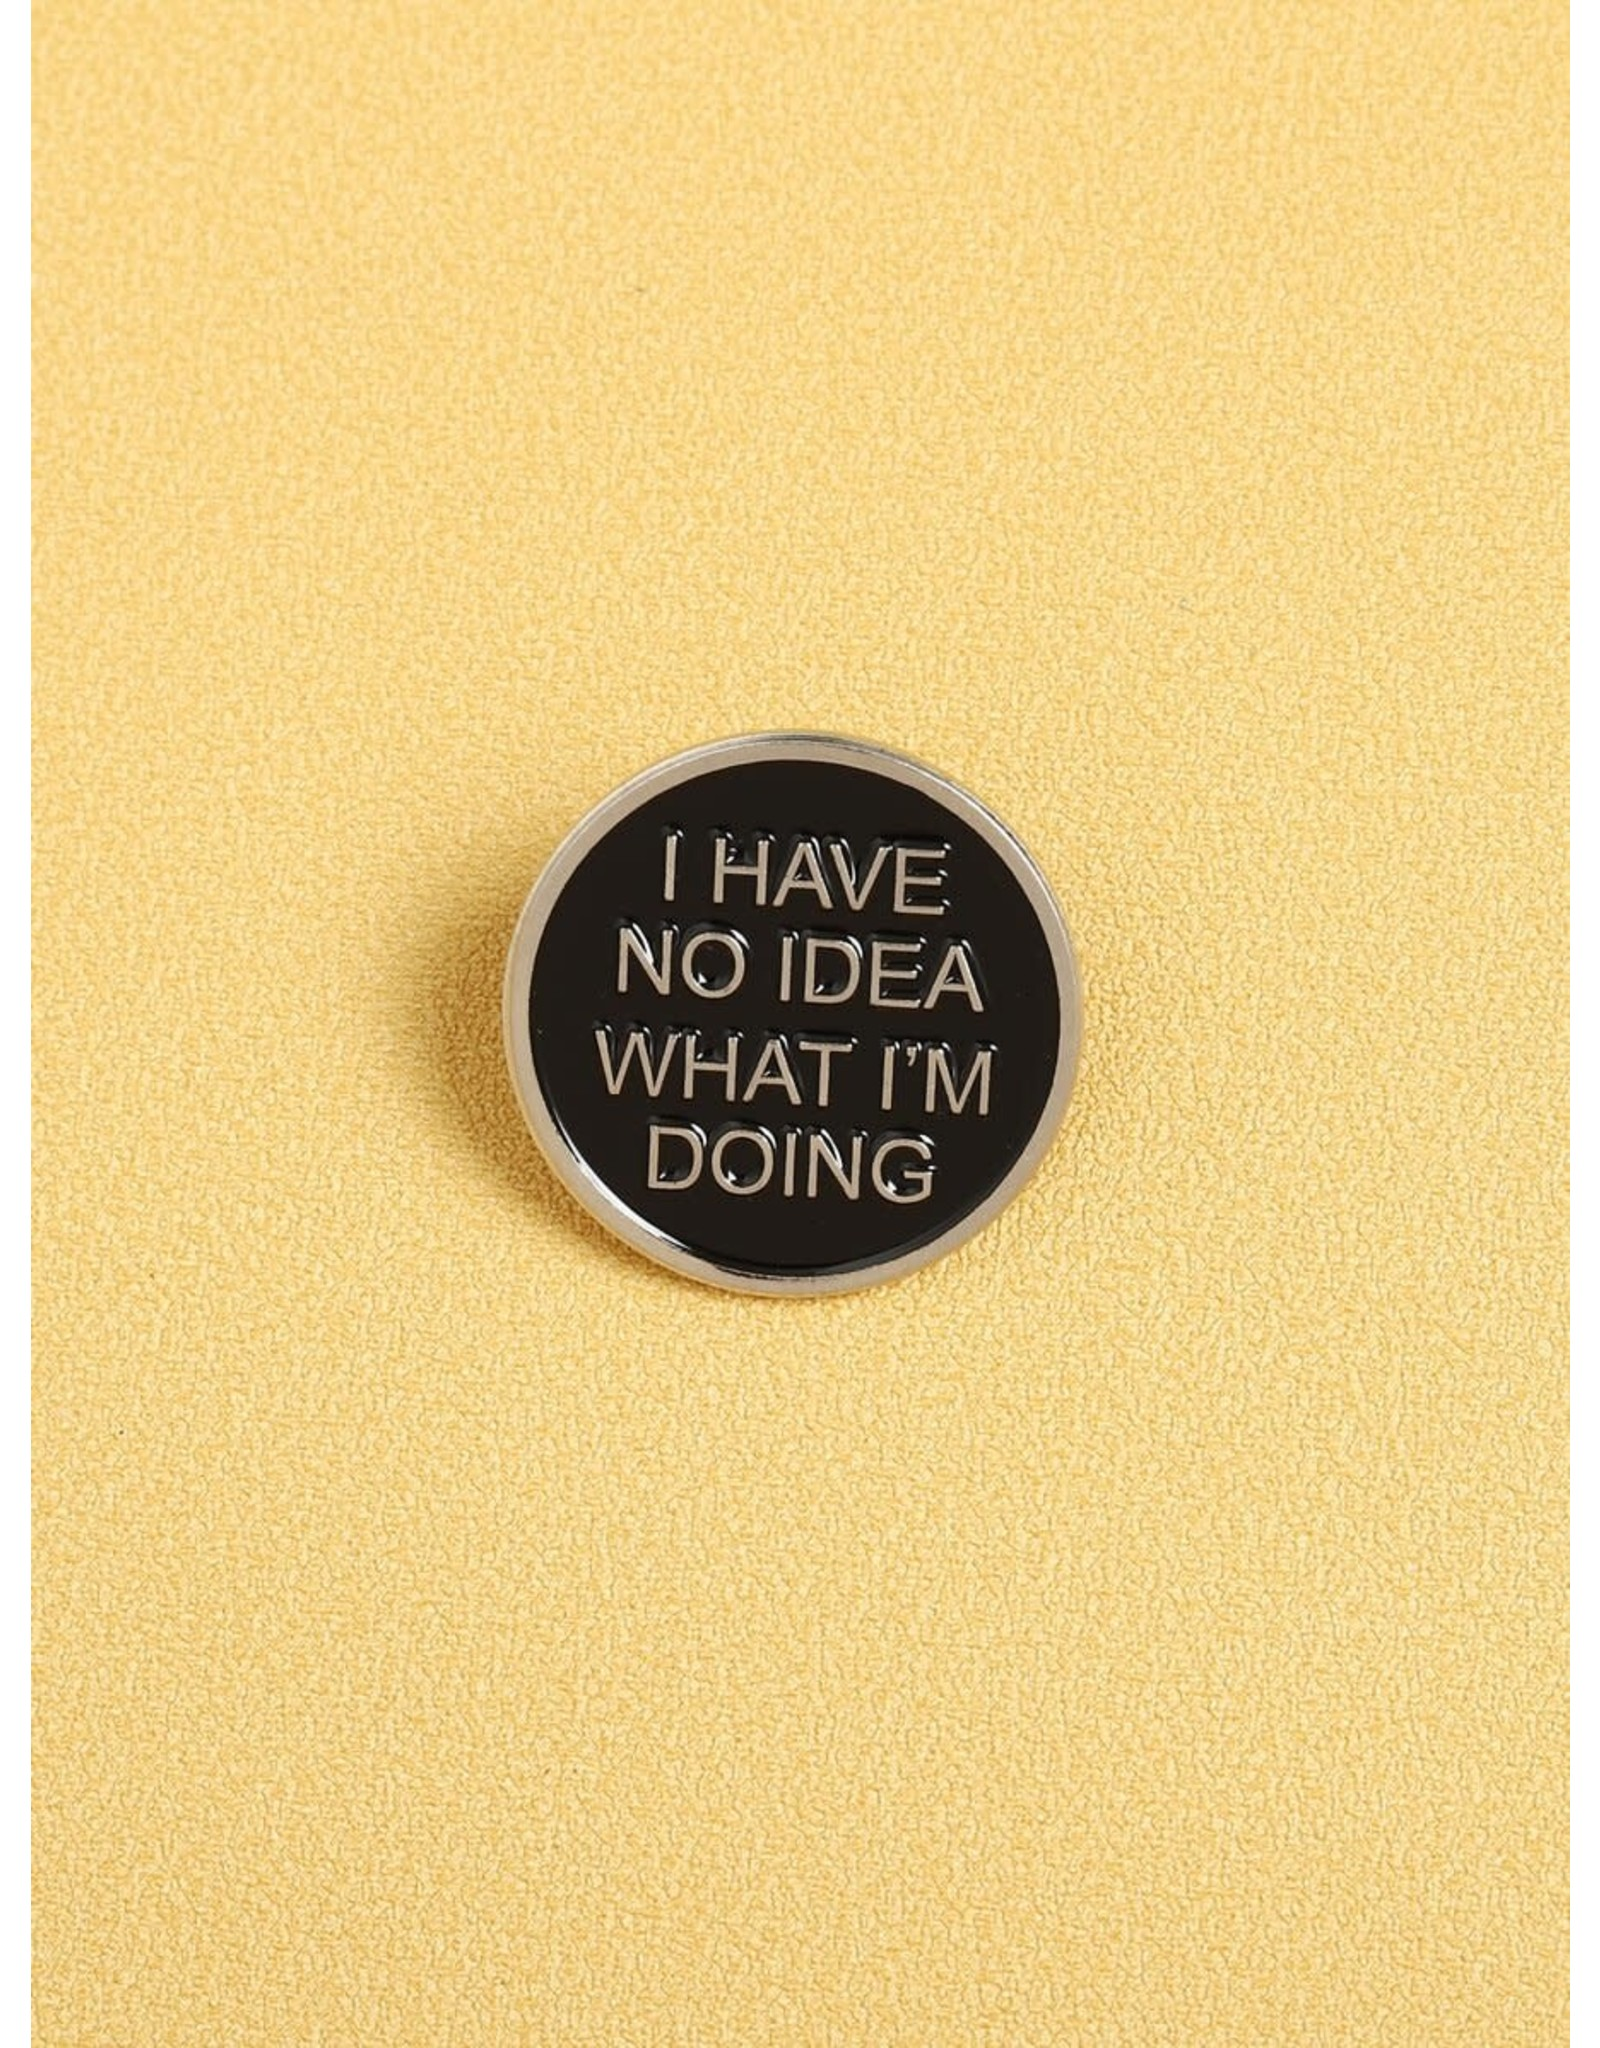 Shein Pin - I Have No Idea What I'm Doing